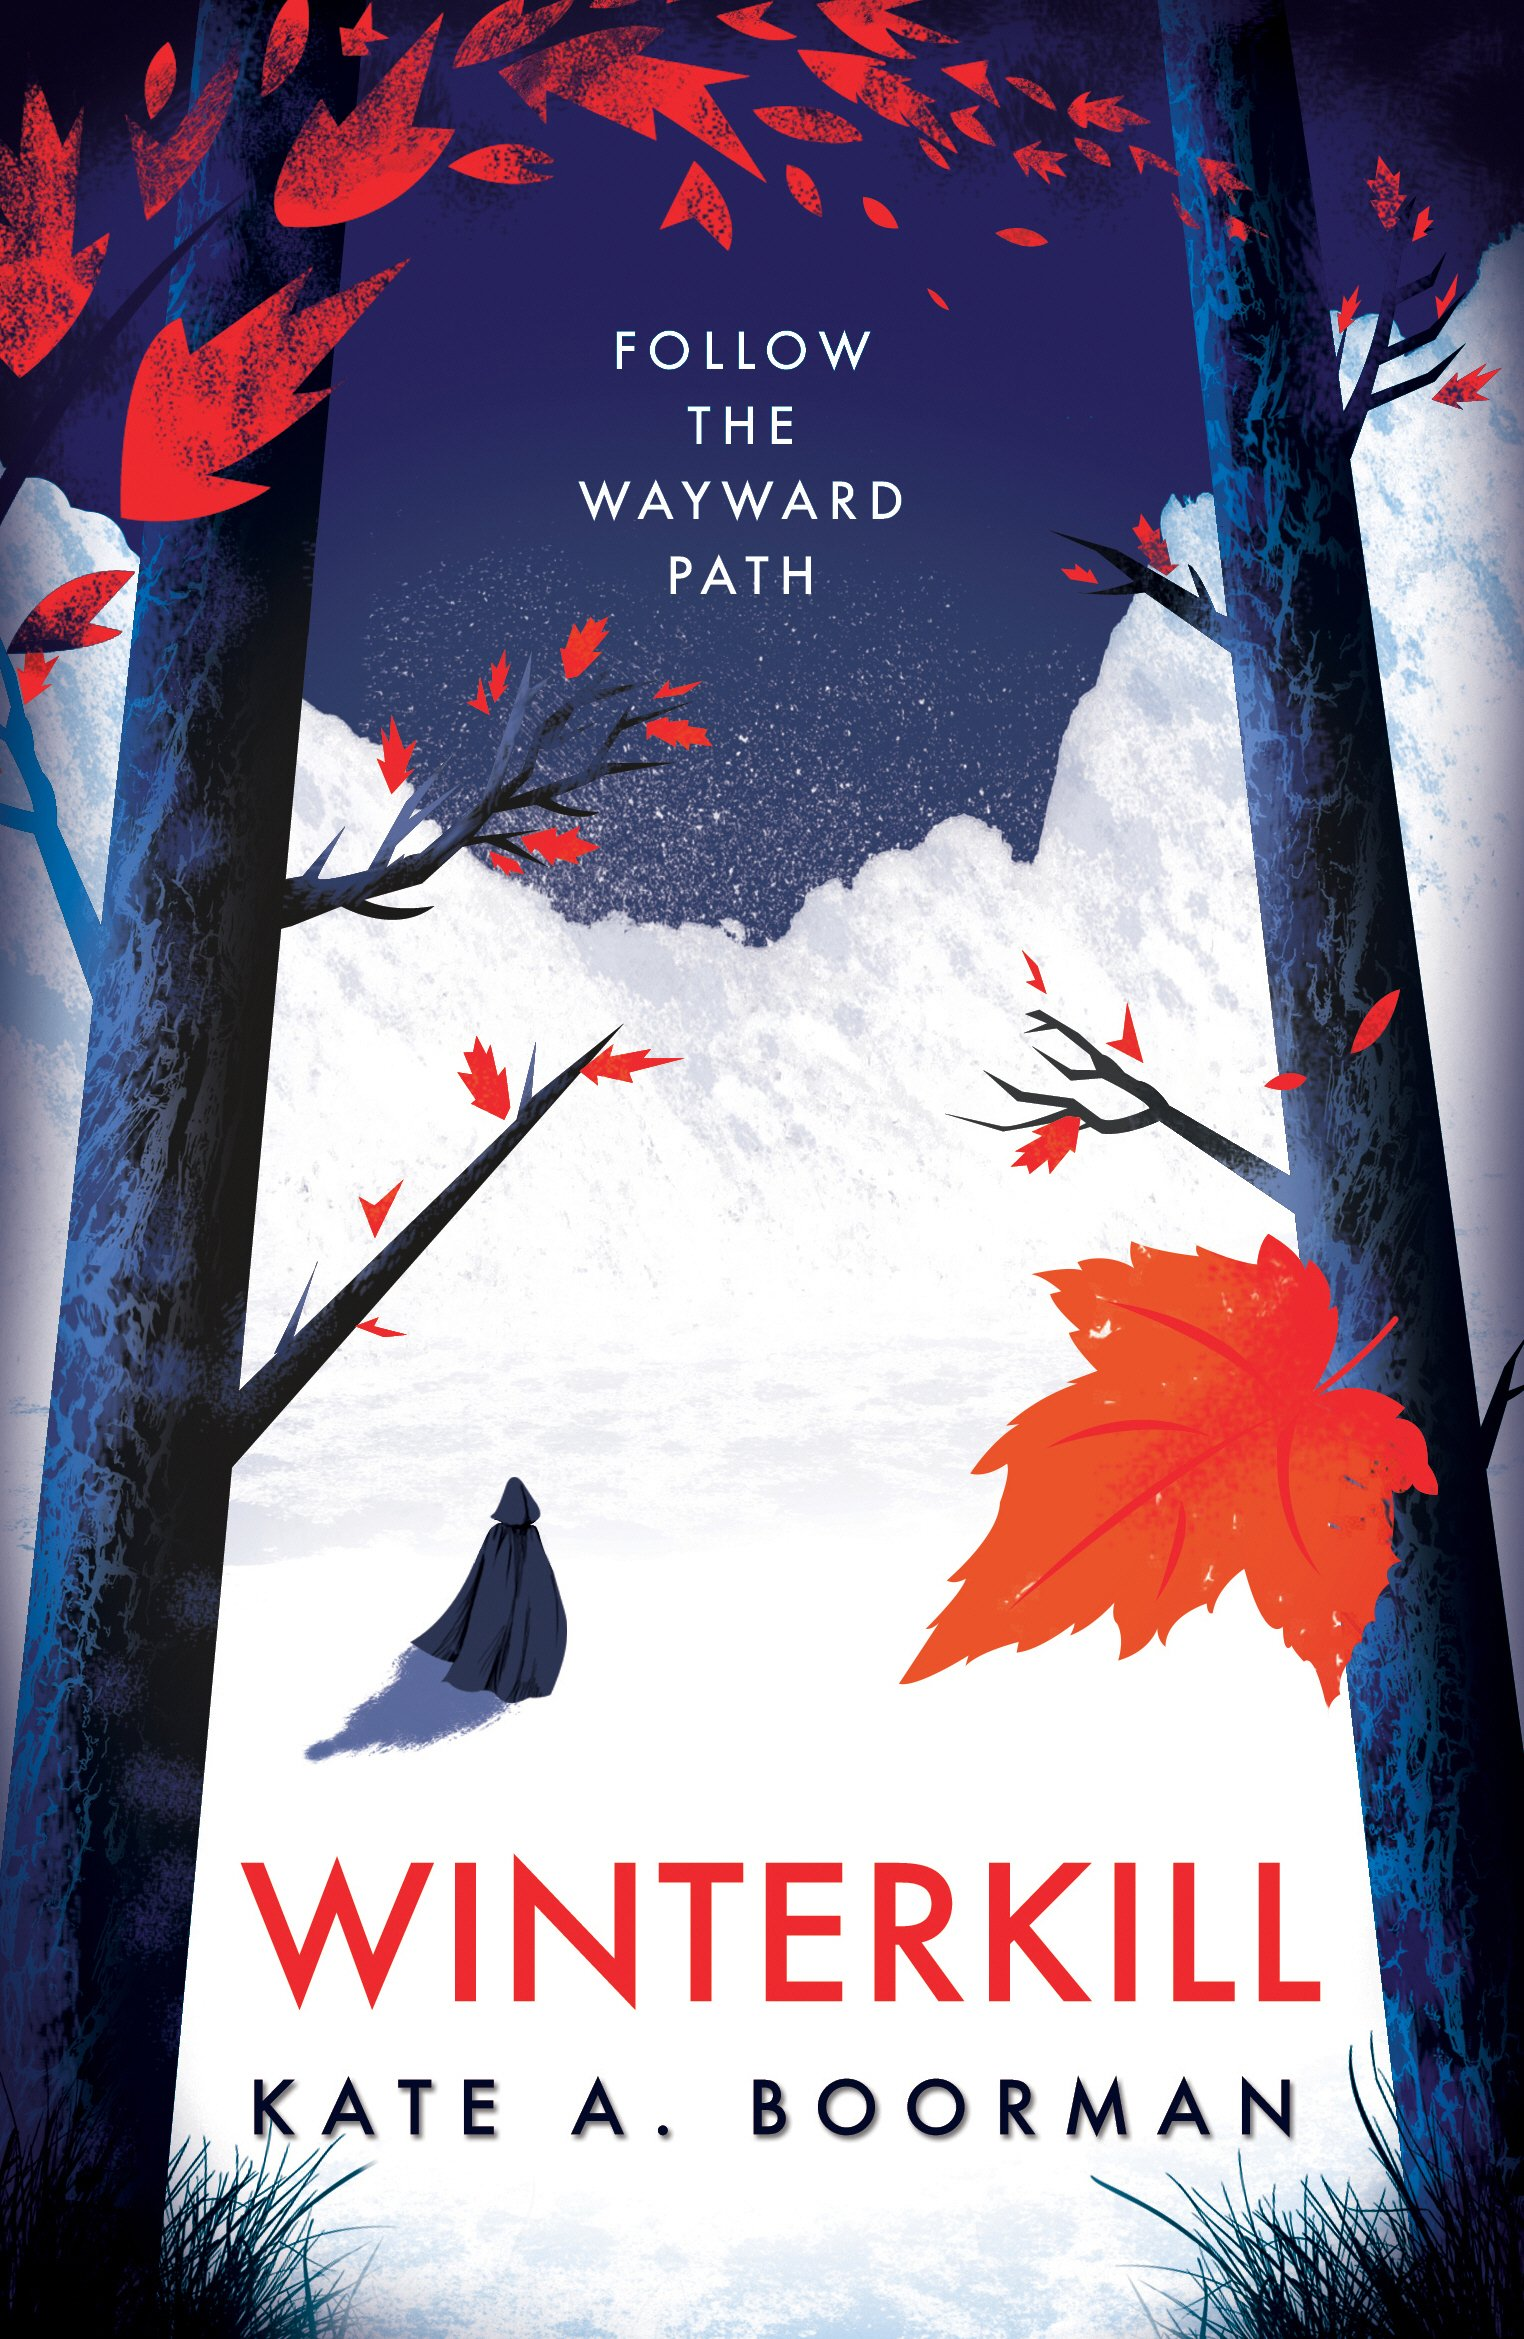 Image result for winterkill book